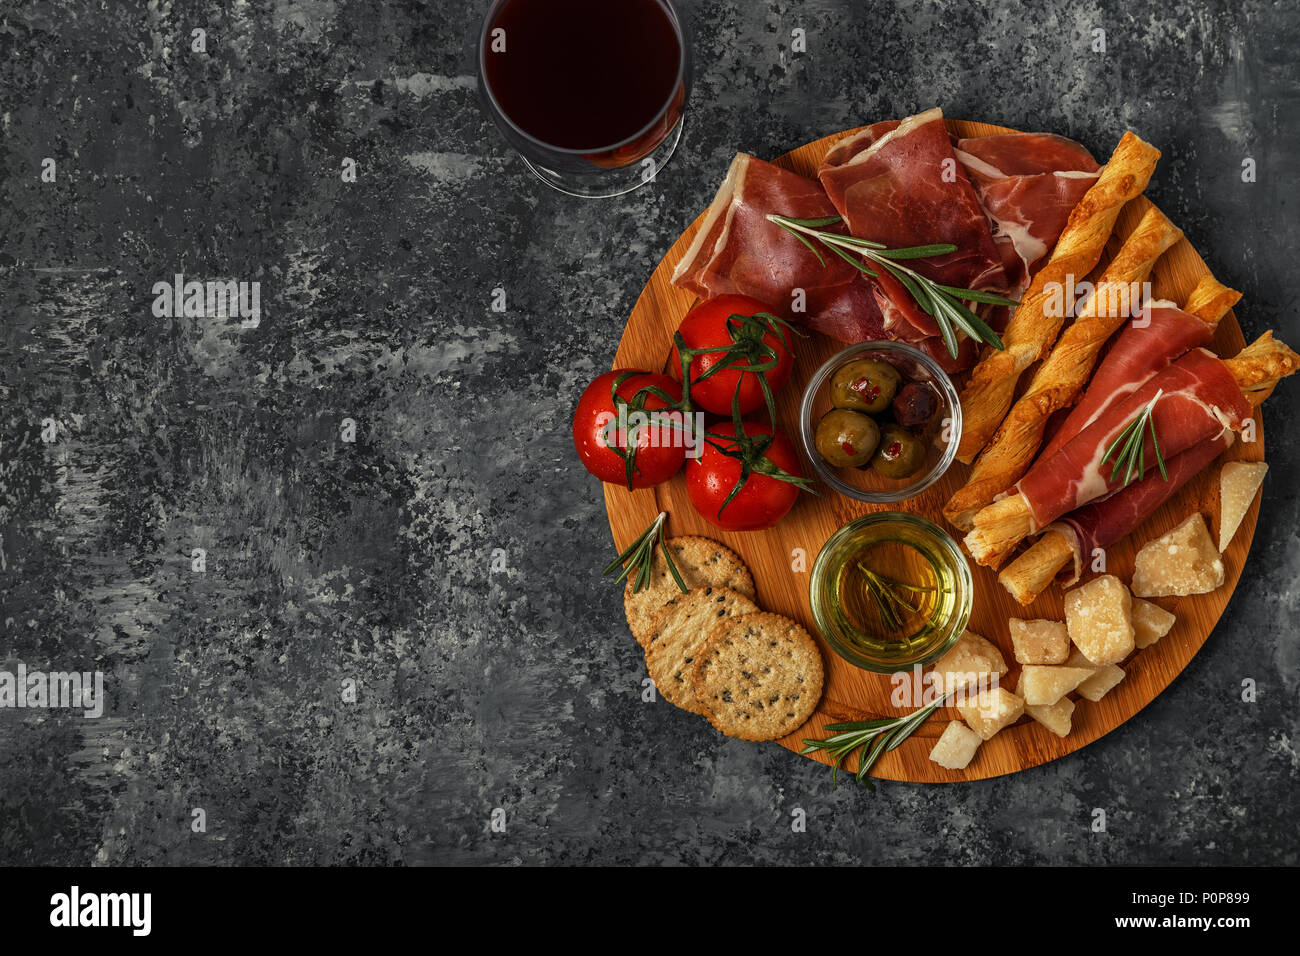 Cheese and meat appetizer selection. Prosciutto, parmesan, bread sticks, olives, tomatoes on wooden board, top view. - Stock Image